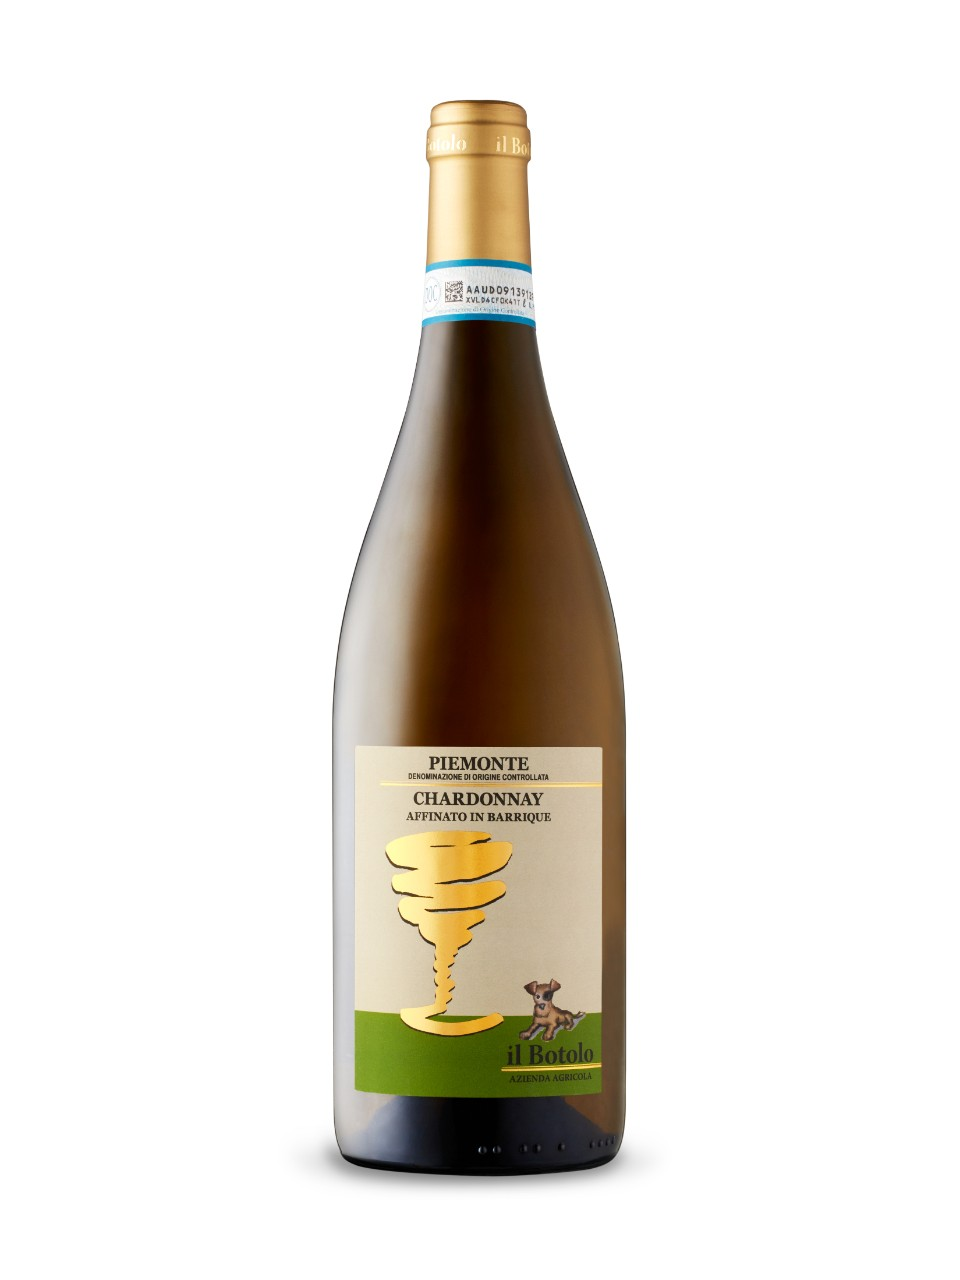 Image for Il Botolo Chardonnay Affinato In Barrique 2015 from LCBO